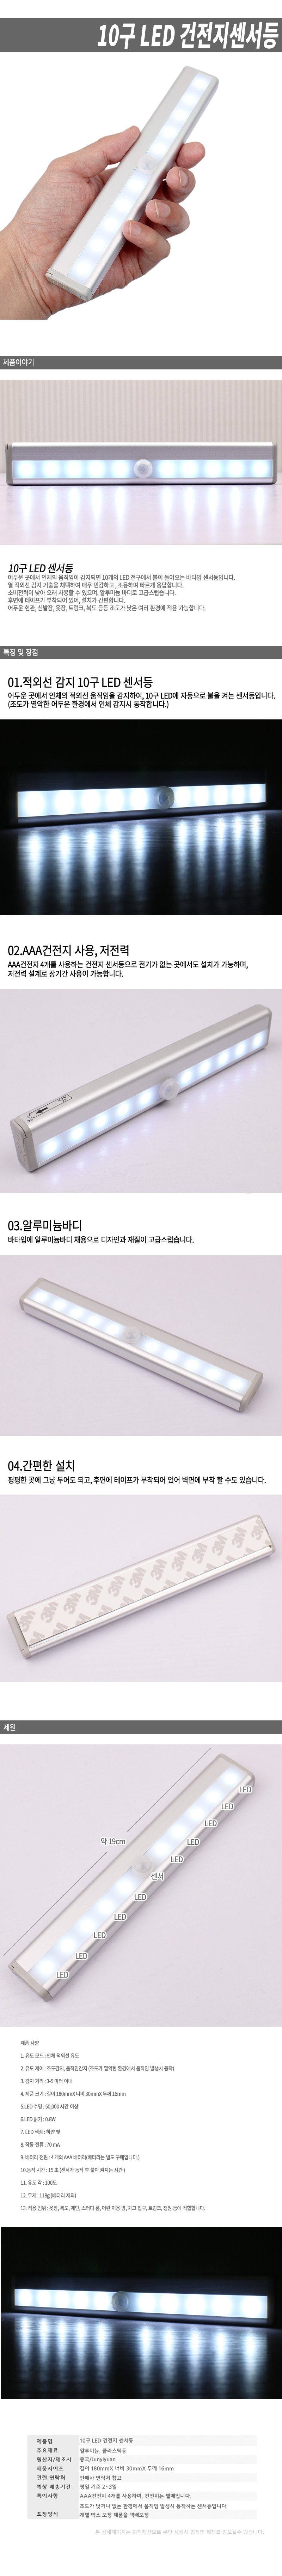 10led_Sensor_Light.jpg